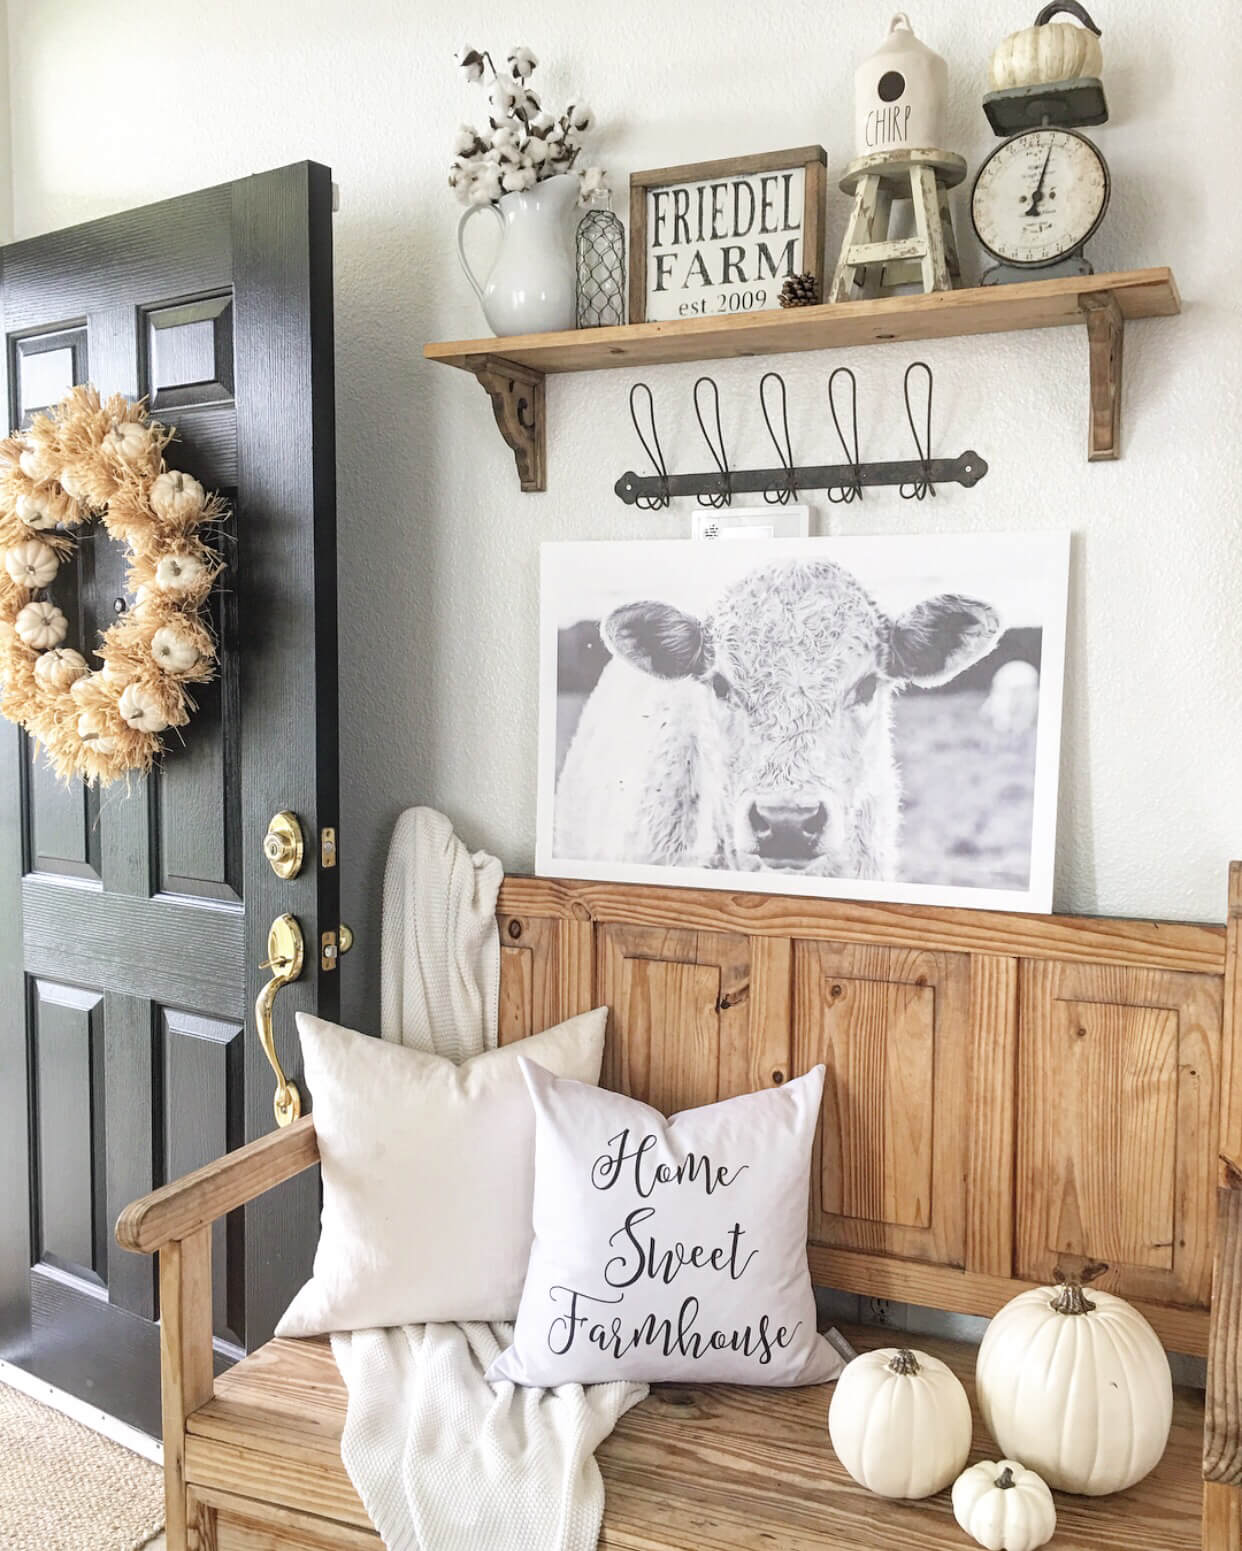 Oak Bench, White Pumpkins, and Cow Prints